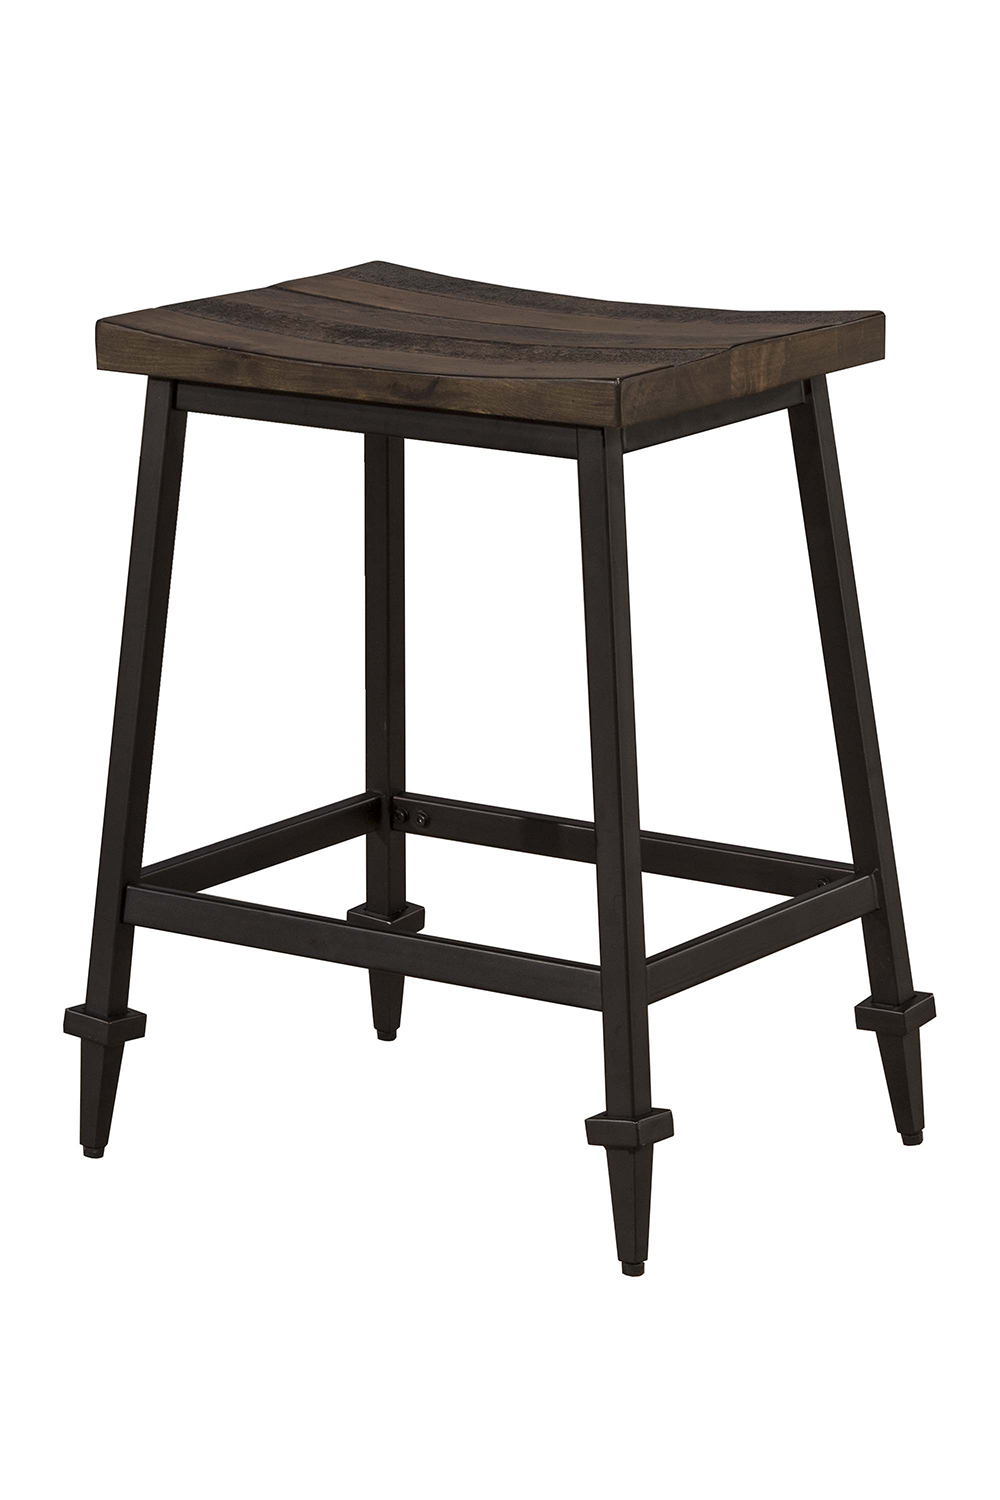 Hillsdale Trevino Non Swivel Counter Height Stool Walnut